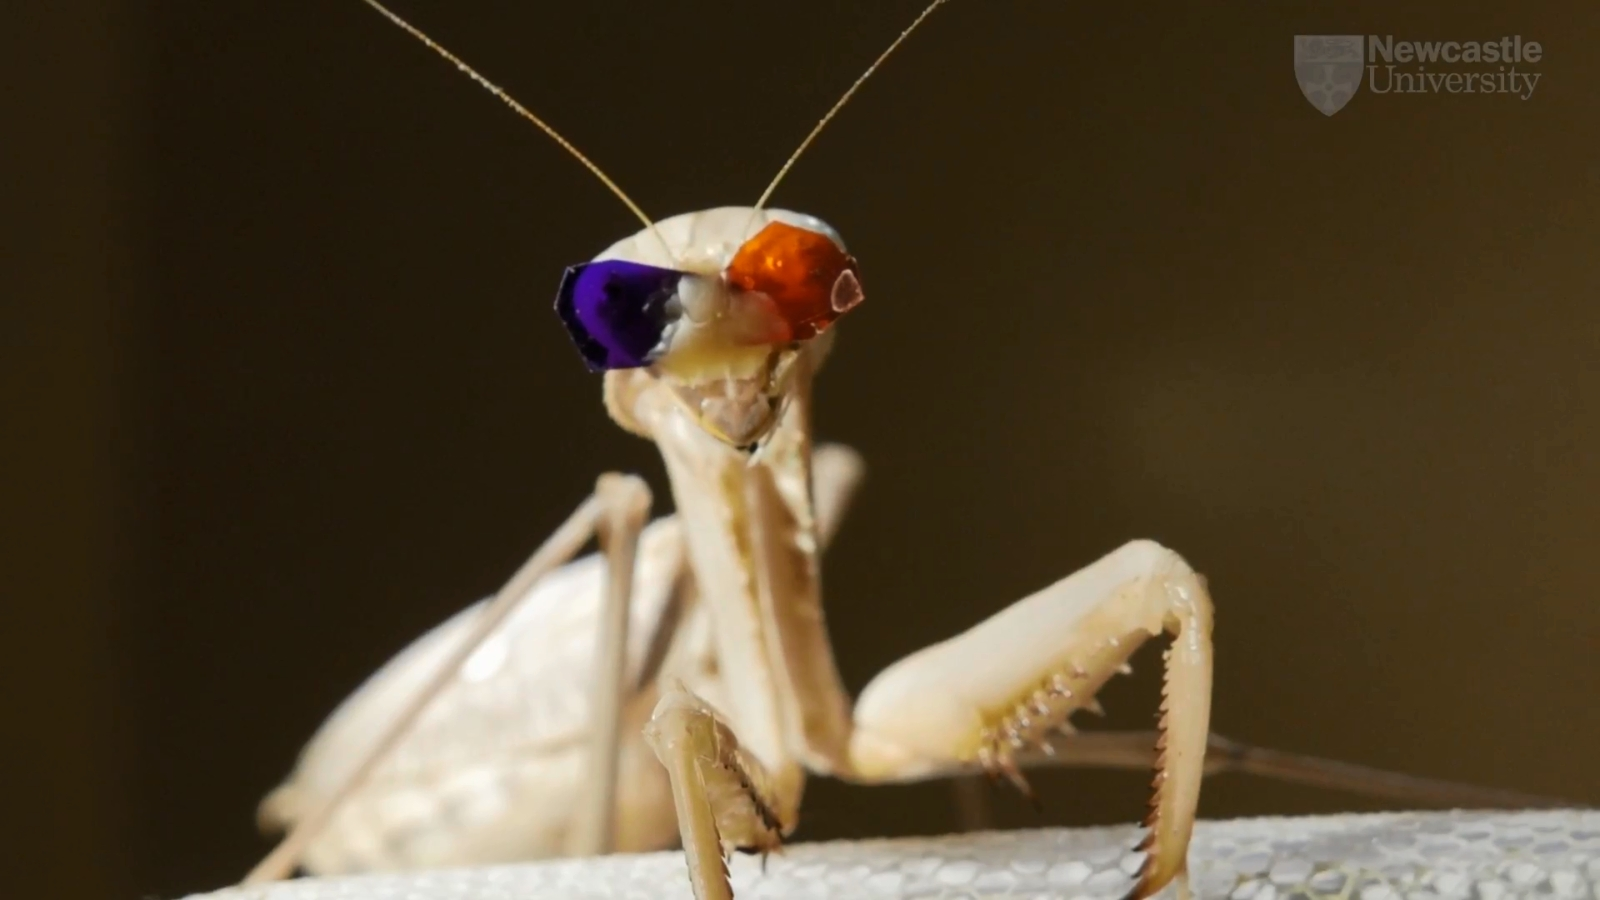 New Type Of 3D Vision In Praying Mantis Discovered